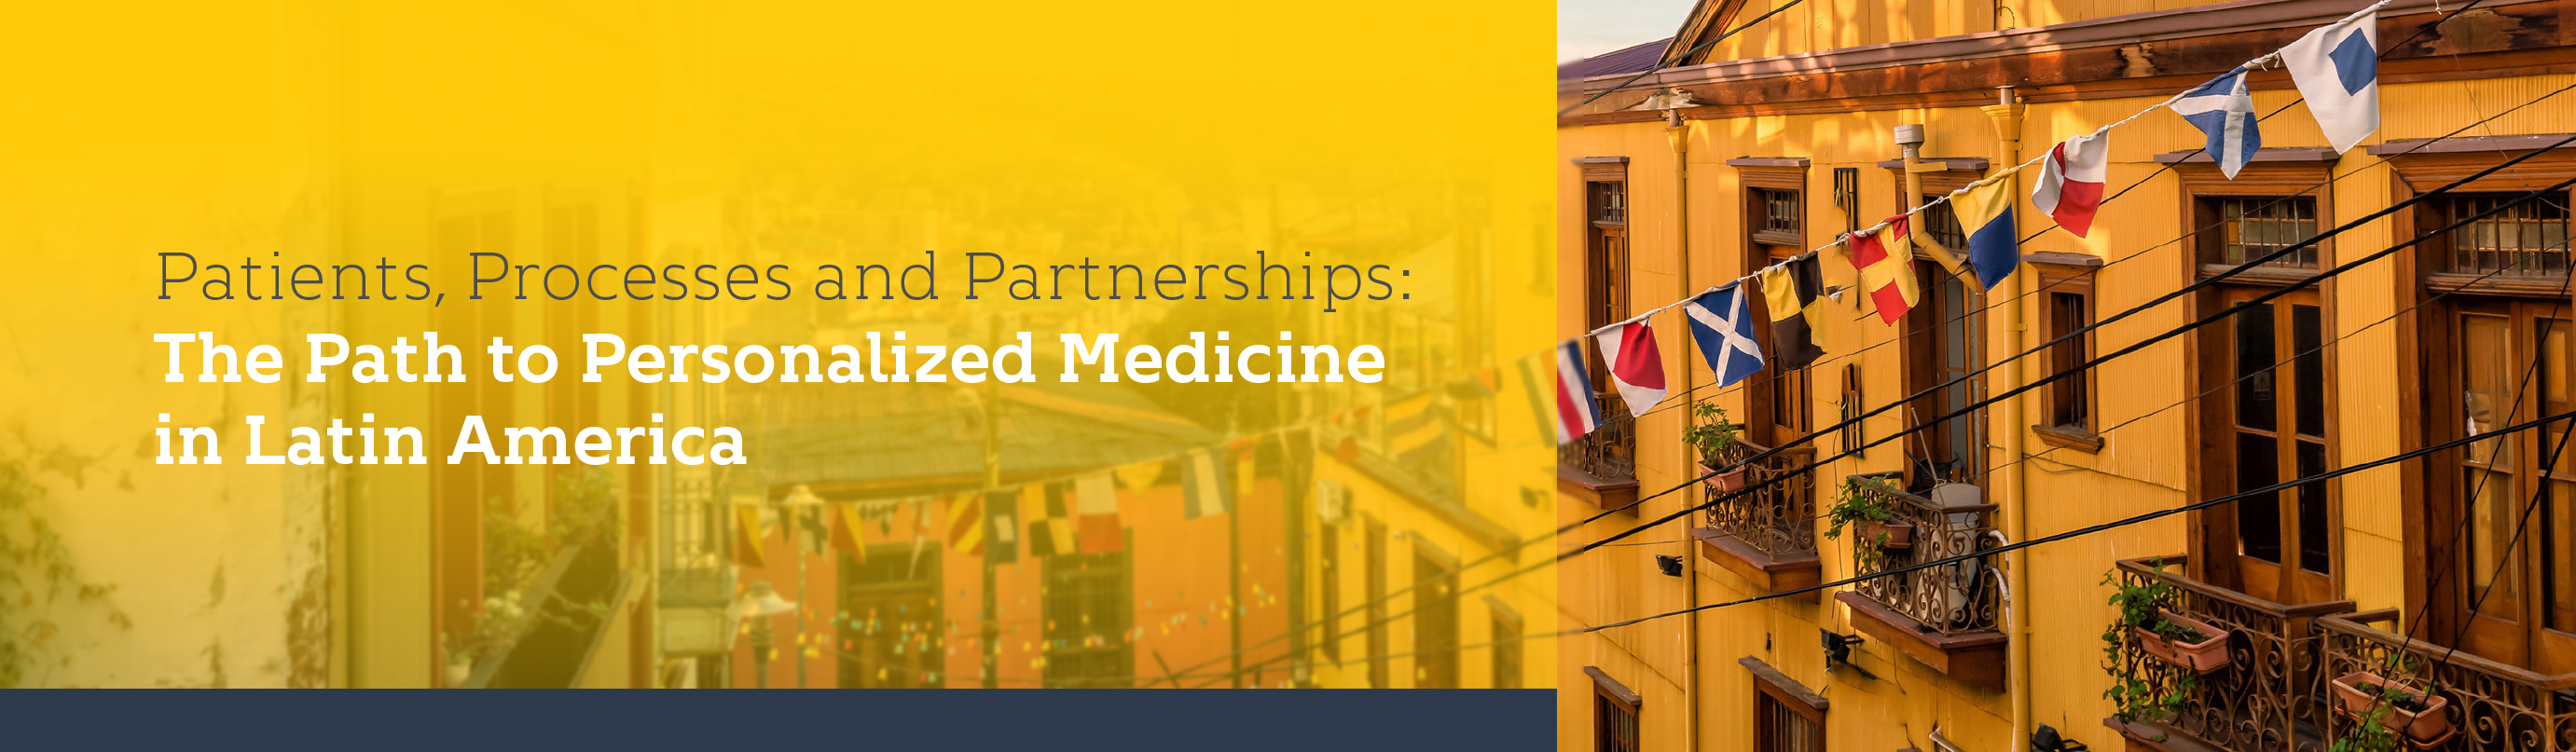 Patients, Processes and Partnerships: The Path to Personalized Medicine